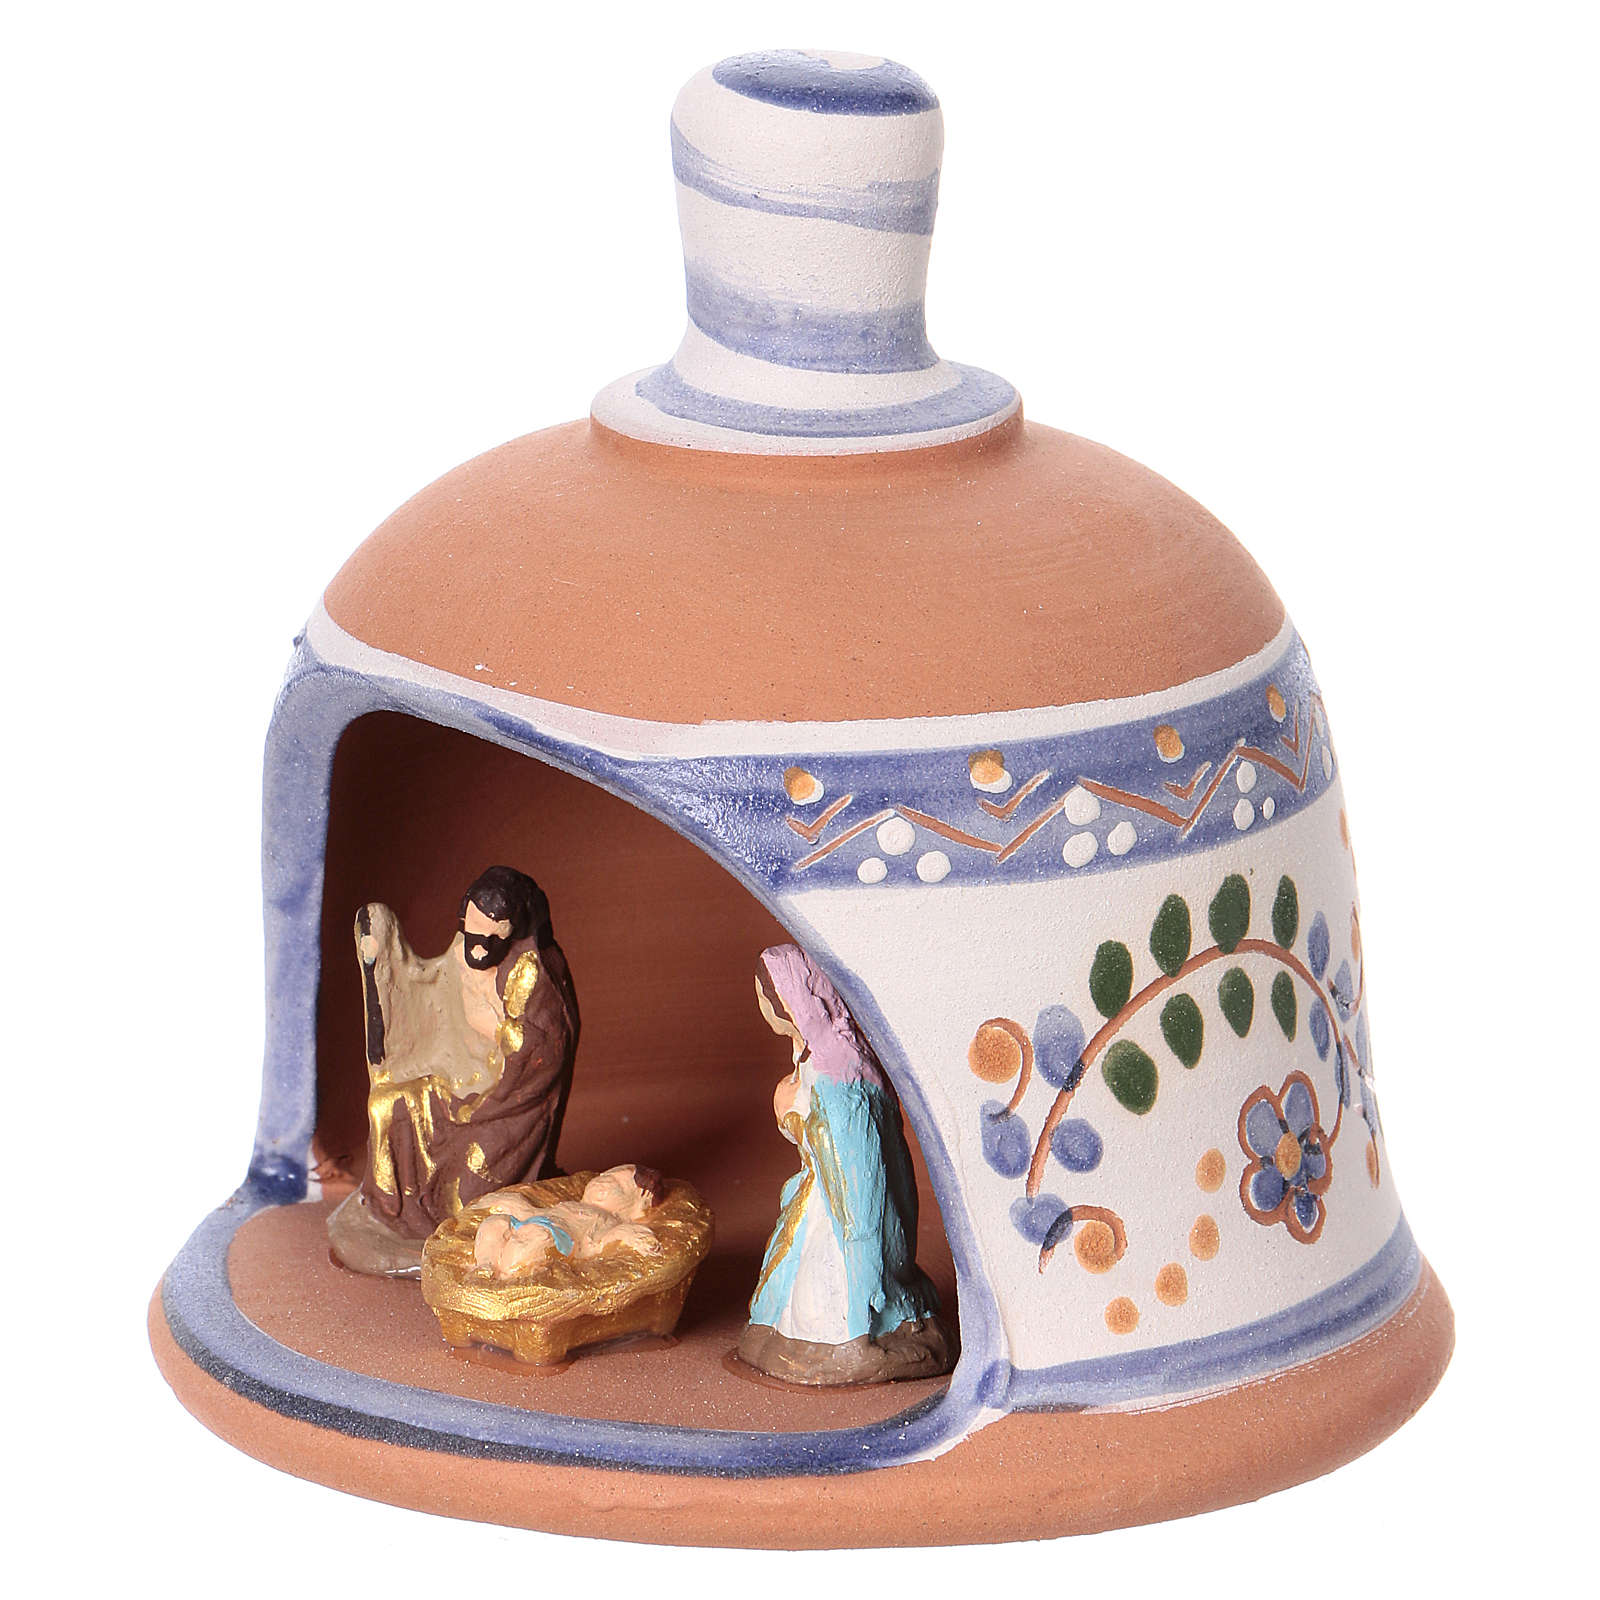 Shed in the shape of a bell with Nativity 3 cm with blue decorations 10x10x10 cm in Deruta terracotta 4